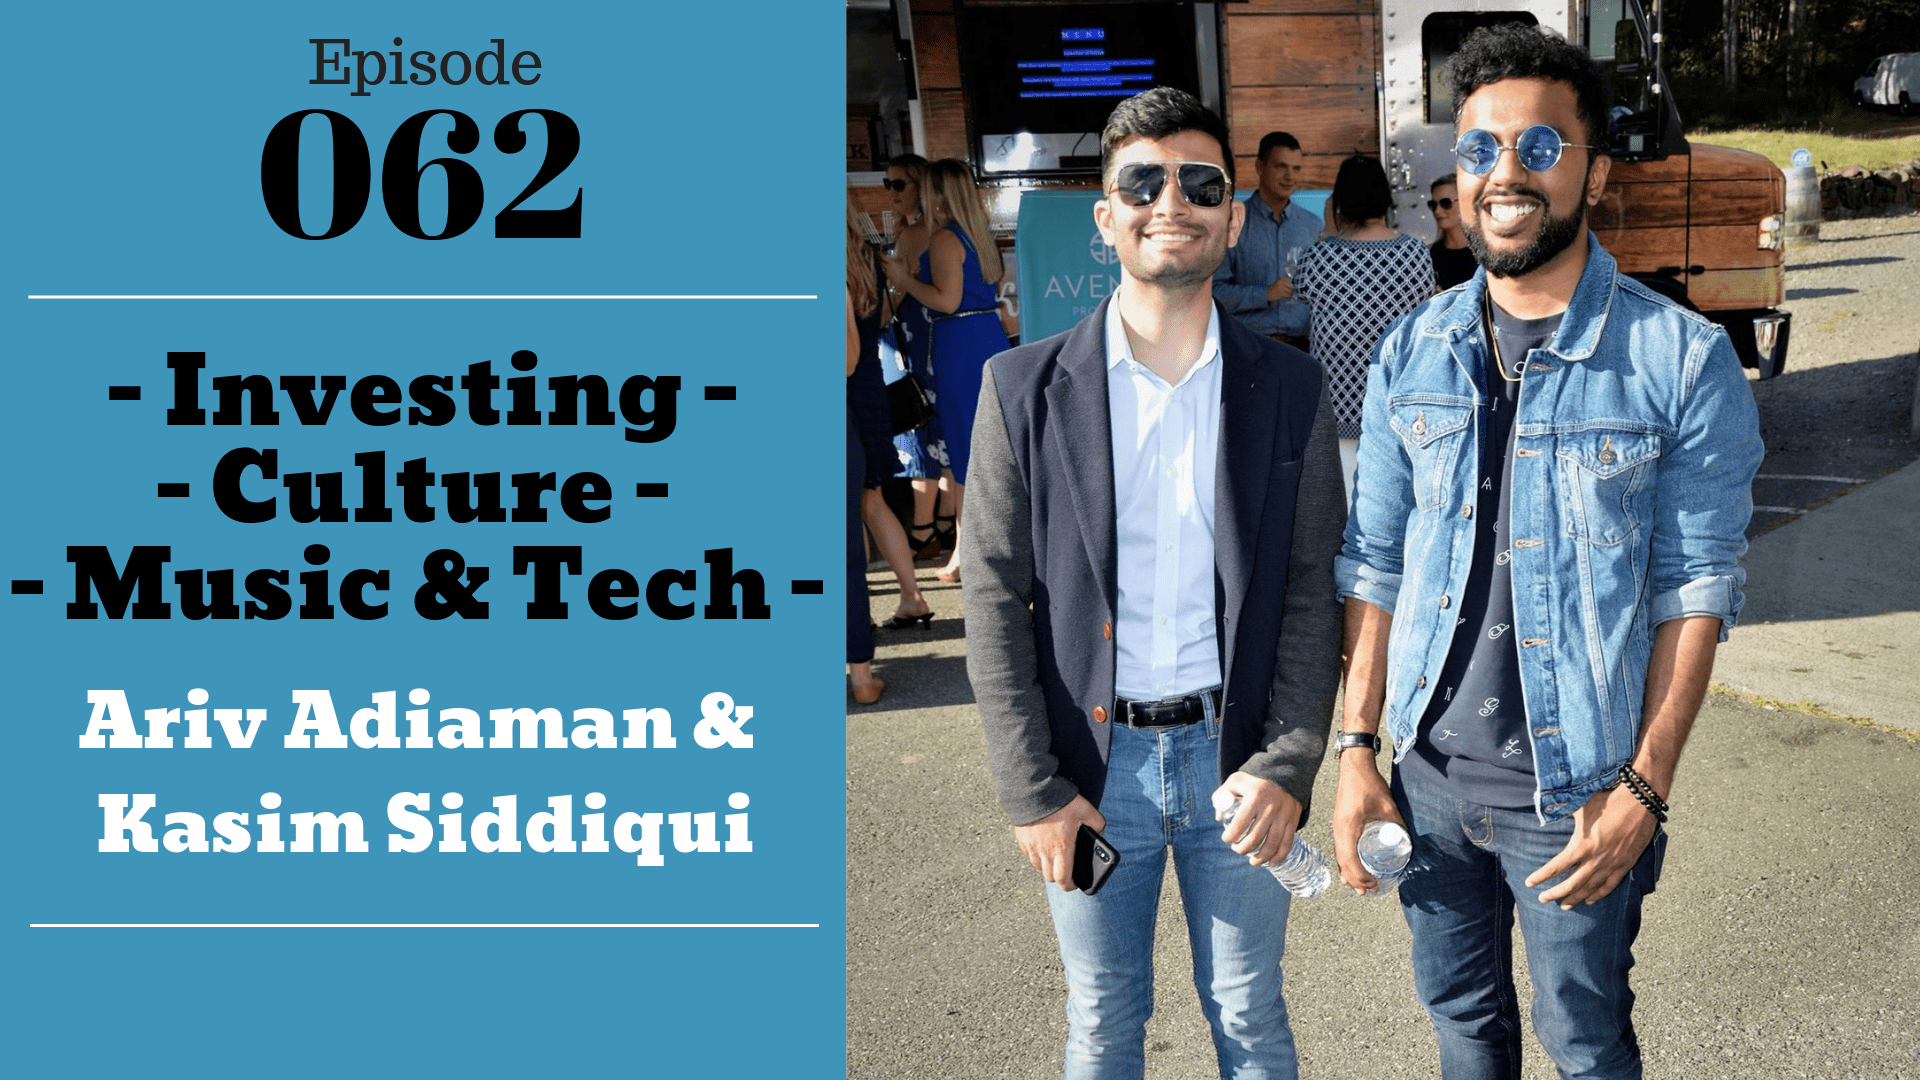 SIC 062: Investing, Culture, Music, & Tech with Ariv Adiaman & Kasim Siddiqui with Julie Clark and Joe Bauer